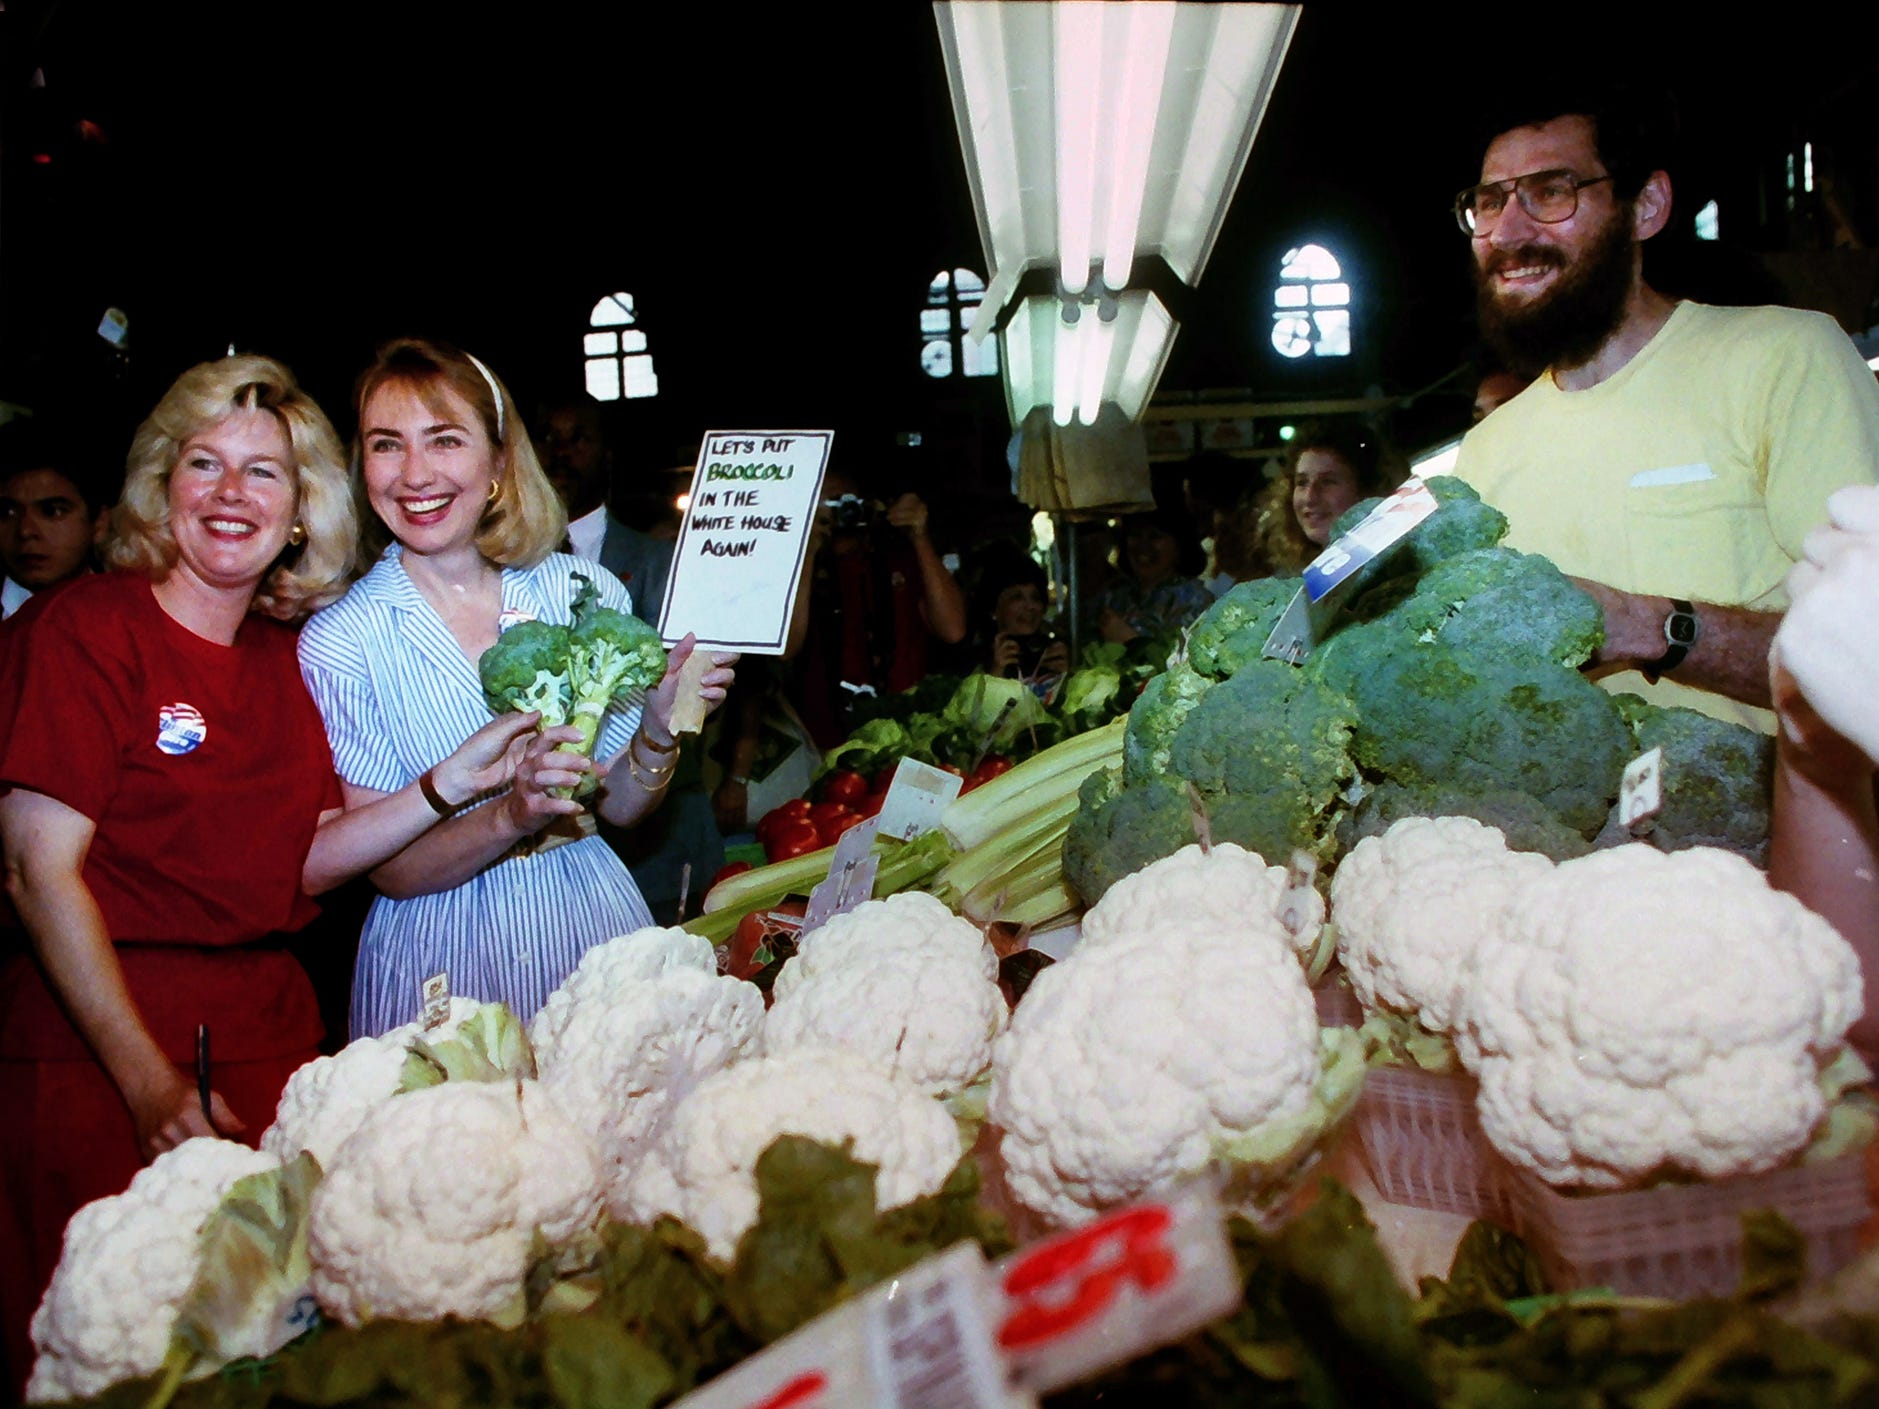 Tipper Gore, left, and Hillary Clinton, second from left, pose with a Central Market vendor holding a sign promoting broccoli during a visit to York July 18, 1992. Hillary Clinton and Tipper Gore accompanied their husbands, Dem nominees Bill Clinton and Al Gore, on a 1,000-mile bus trip after winning their party's nod in July 1992.